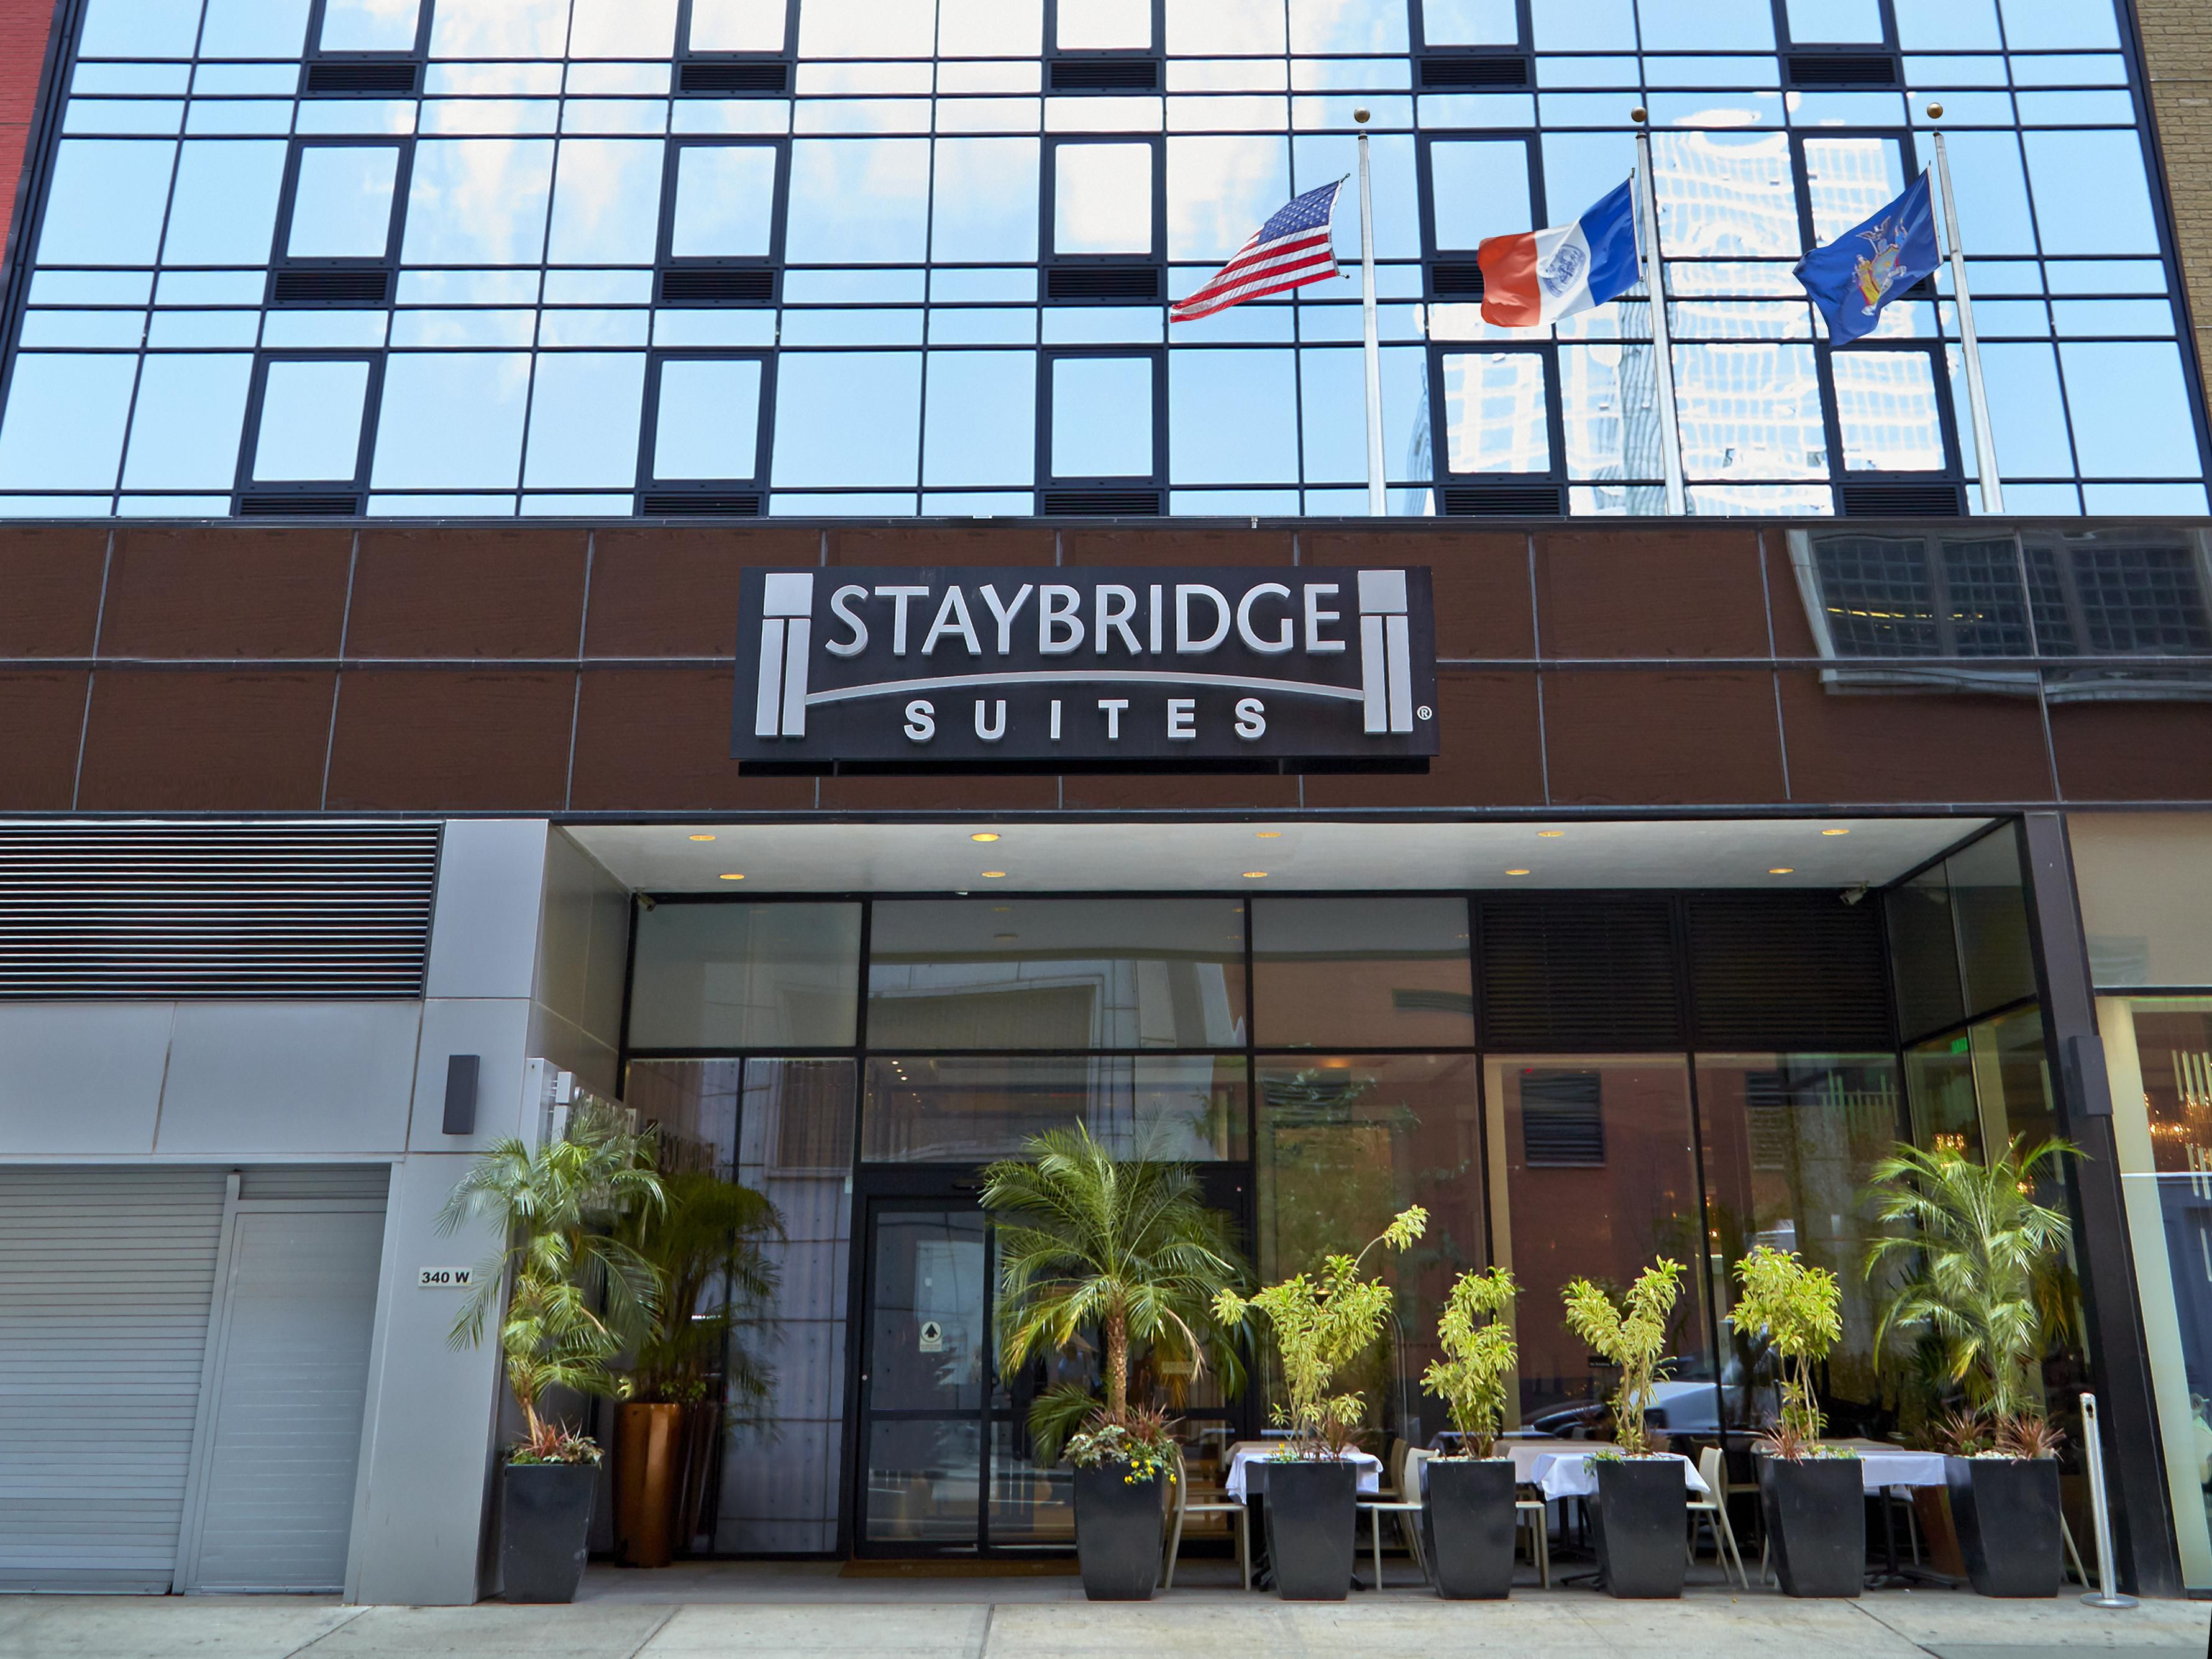 Hotel Staybridge New York